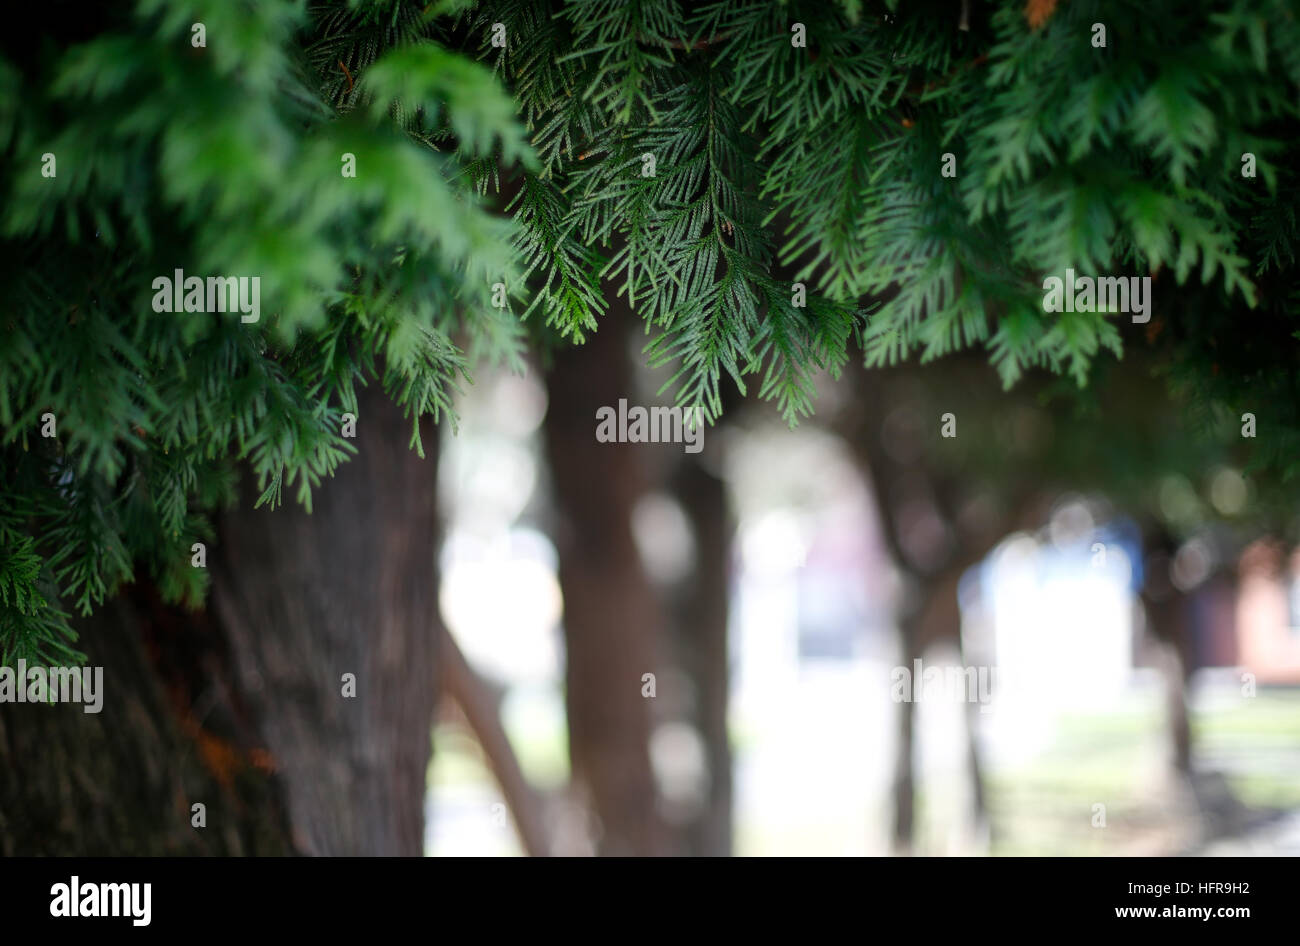 tree leaves with a unfocused background - Stock Image